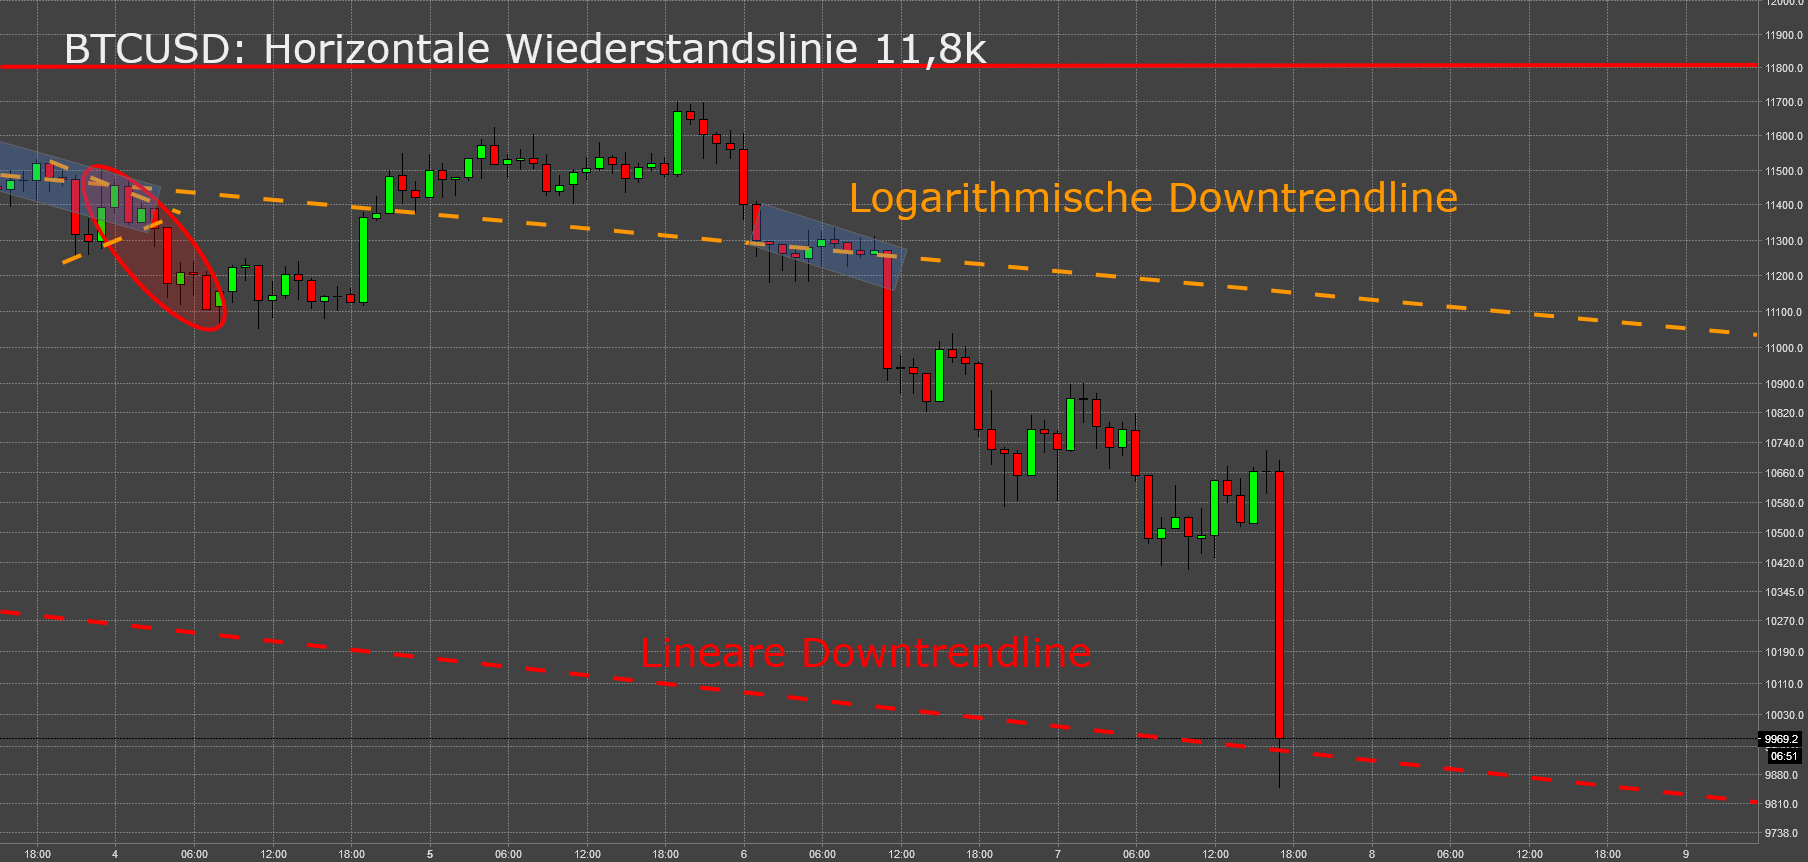 BTC long: (Dead Cat) Re-Bound von Downtrendline möglich